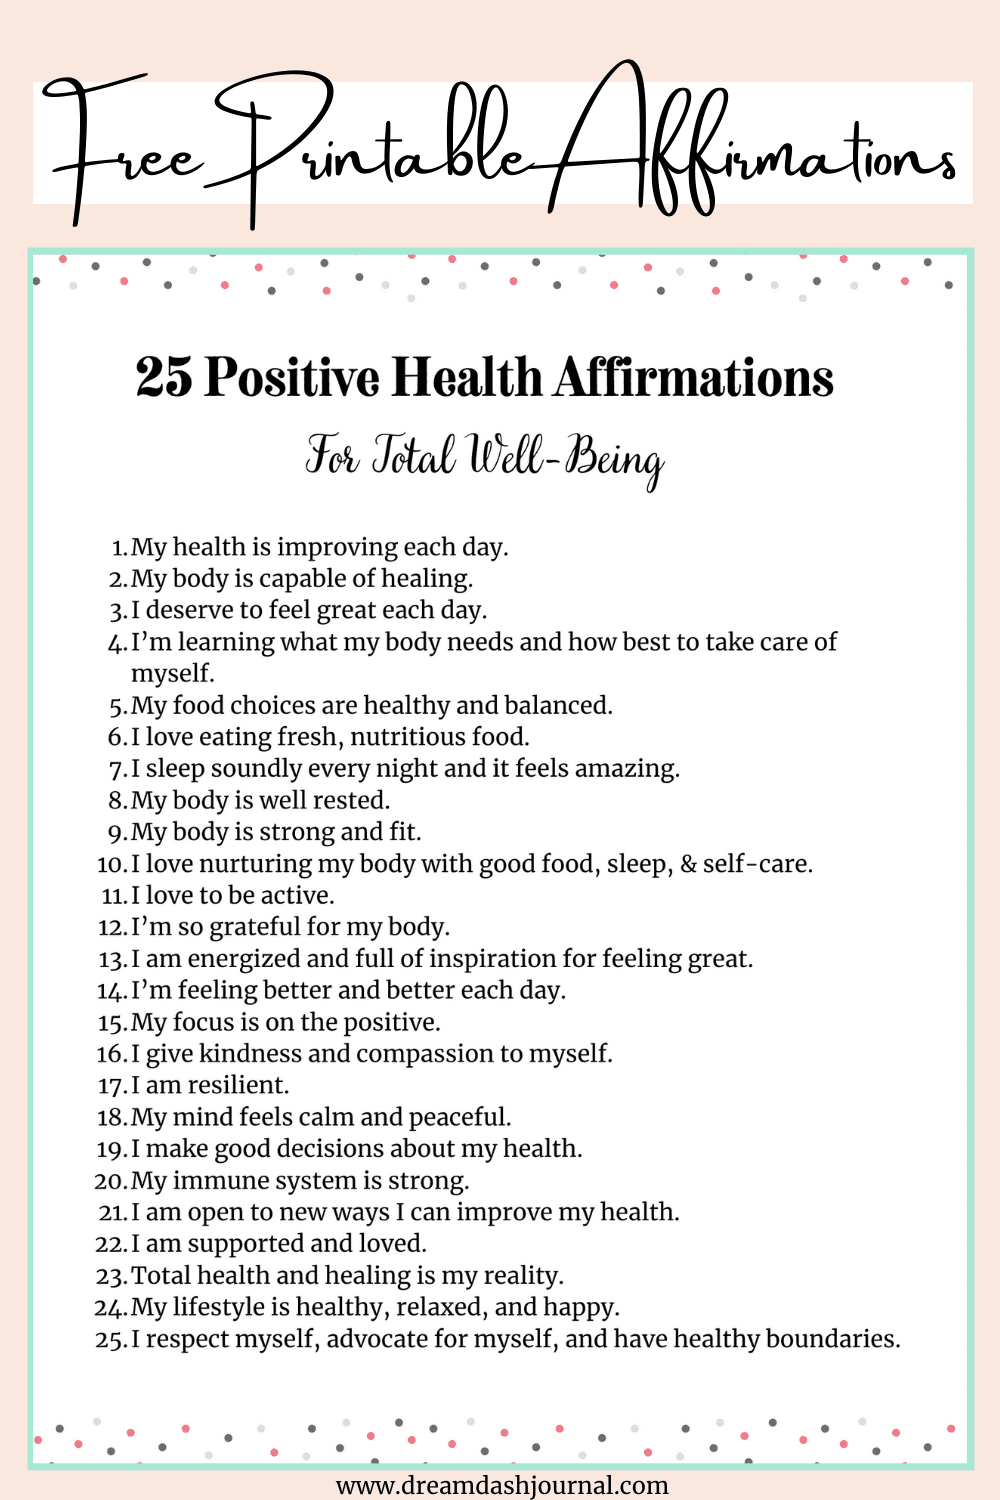 25 Positive Health Affirmations for Well-Being {Free PDF Printable Cards + Worksheet!}